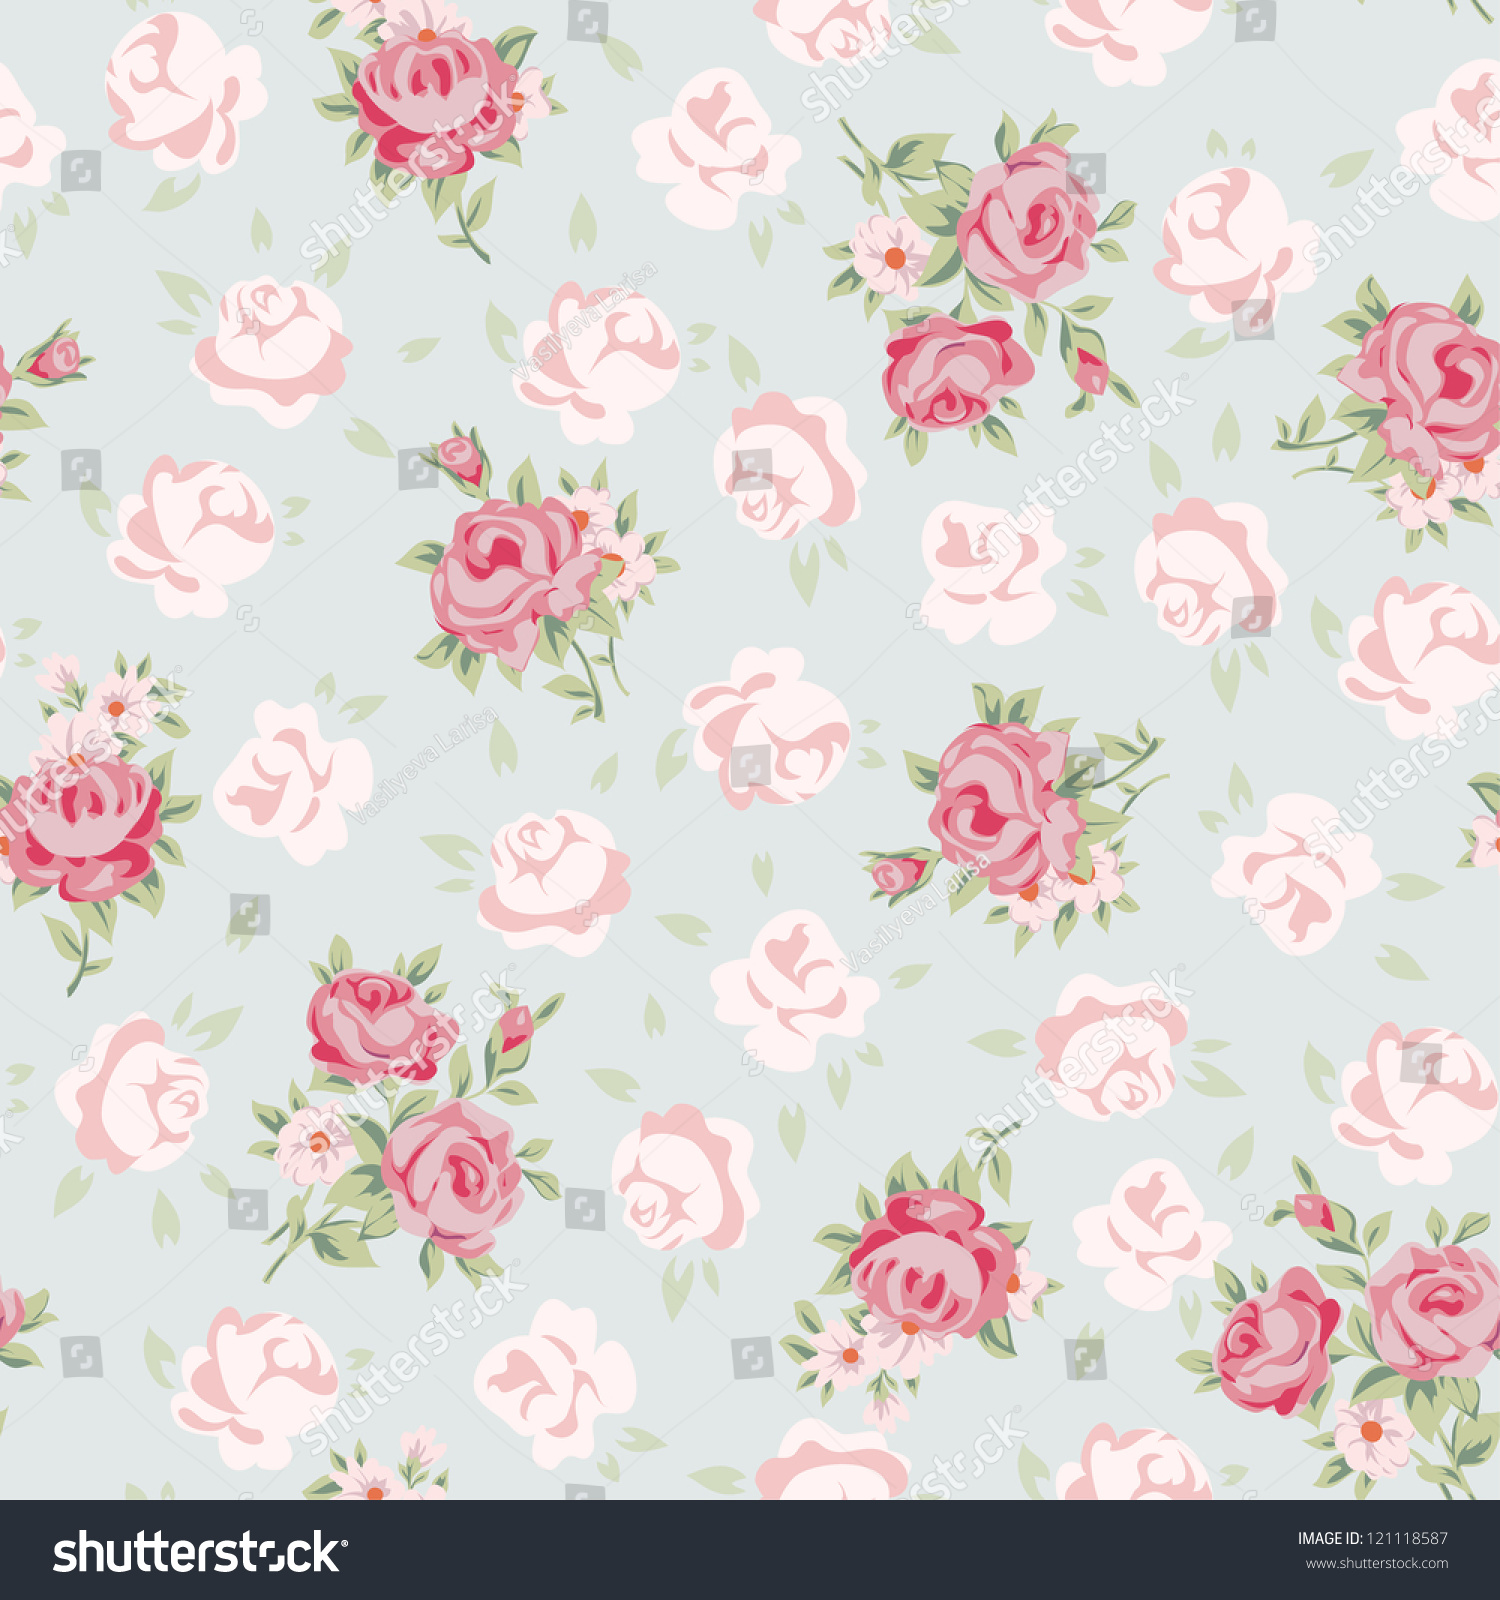 Floral Seamless Vintage Pattern Shabby Chic 121118587